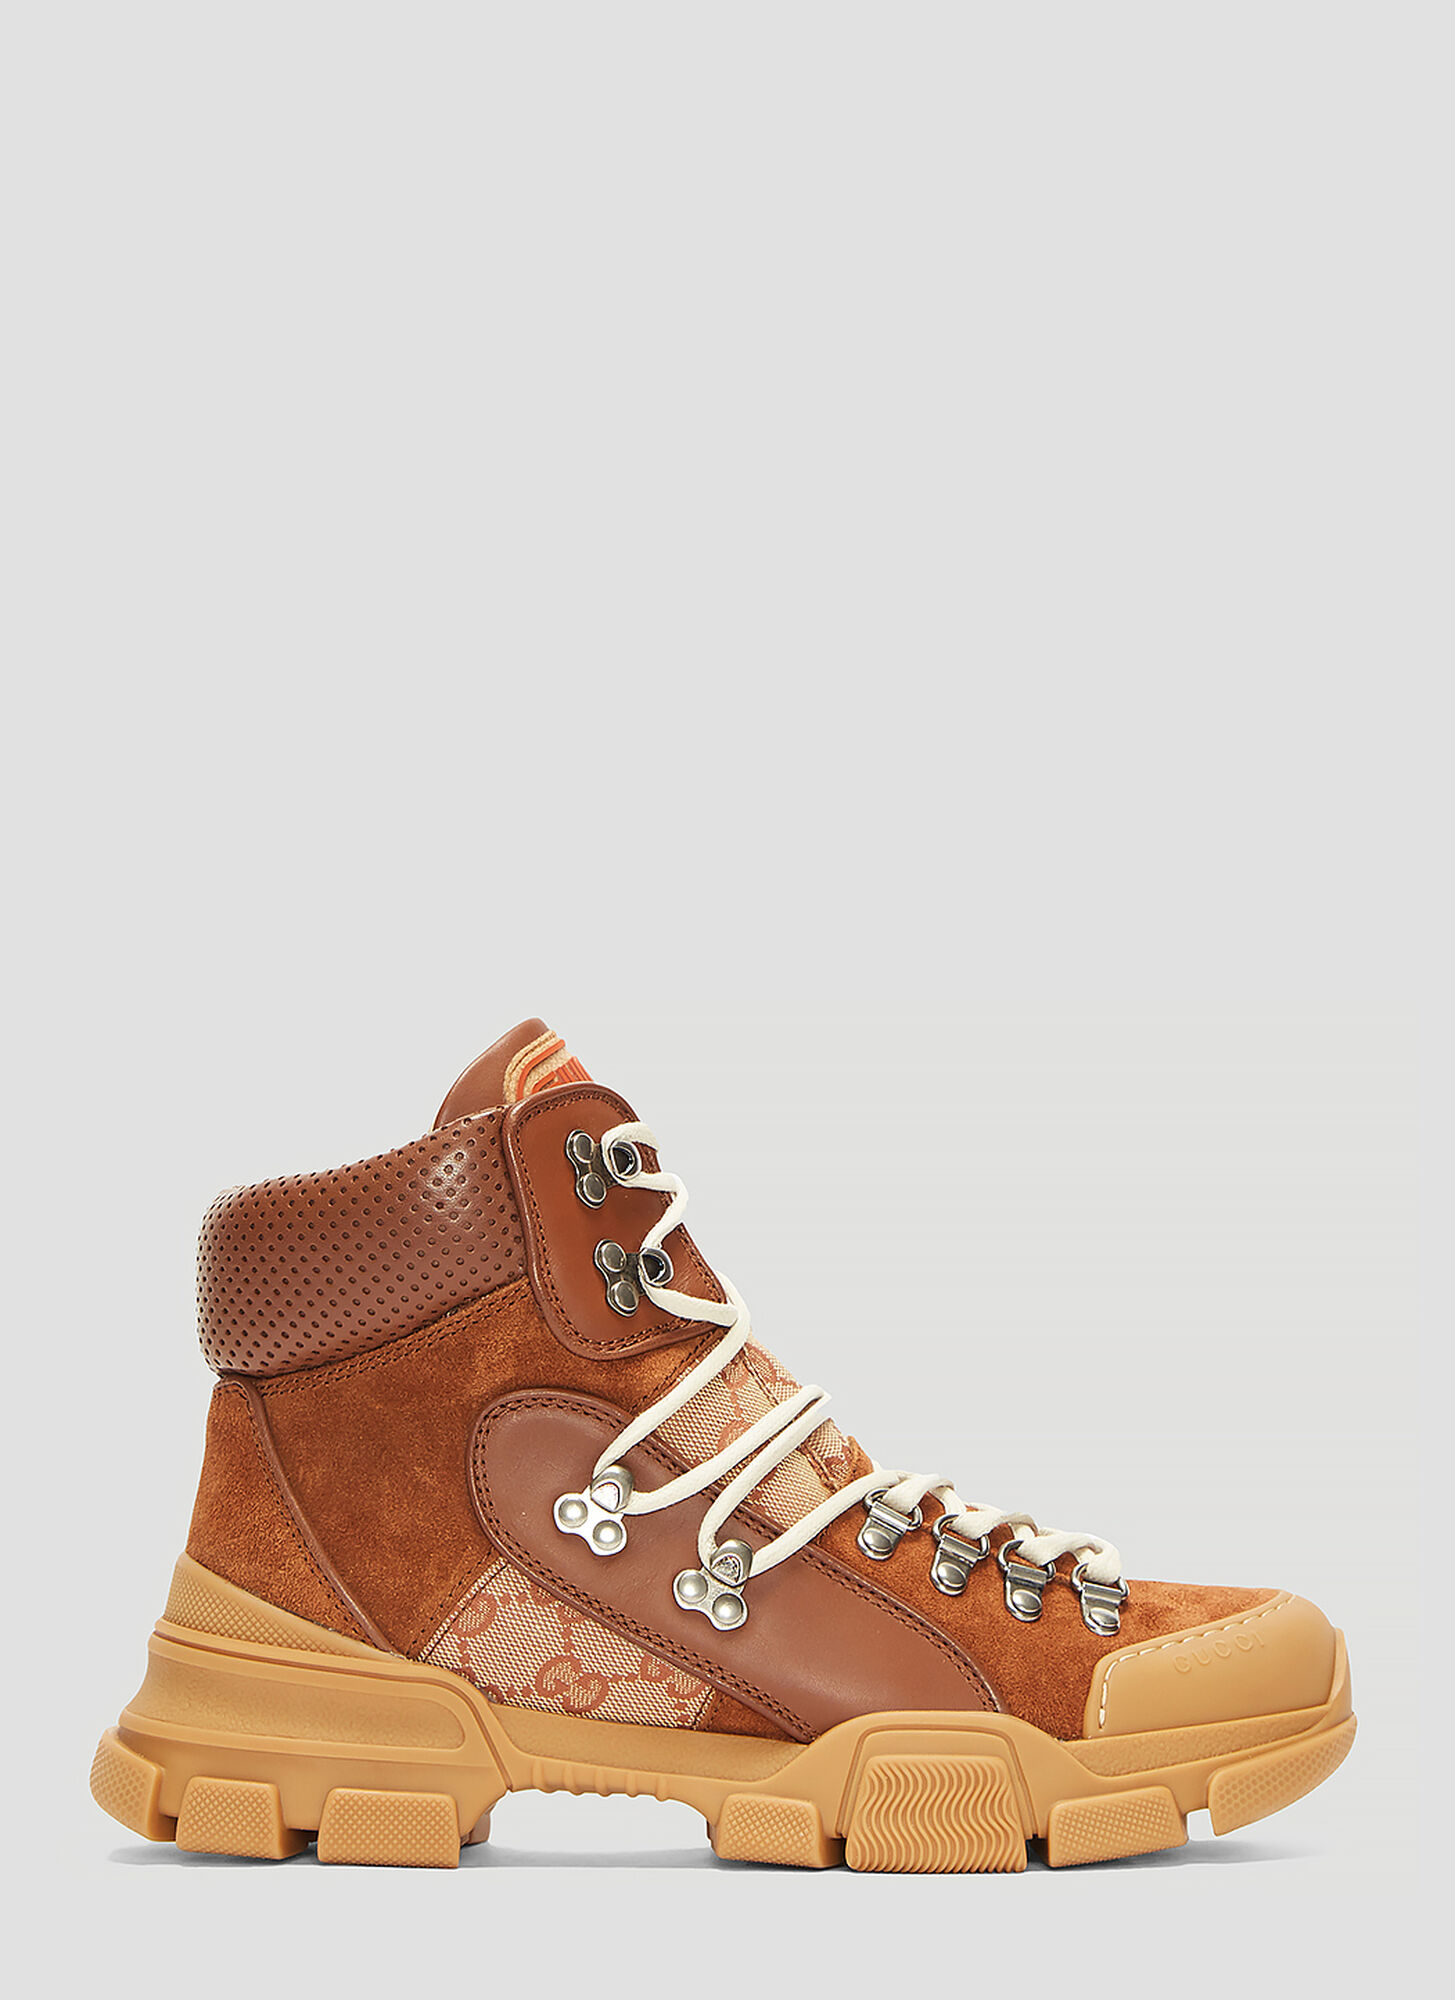 Gucci Flashtrek GG High-Top Sneaker in Brown